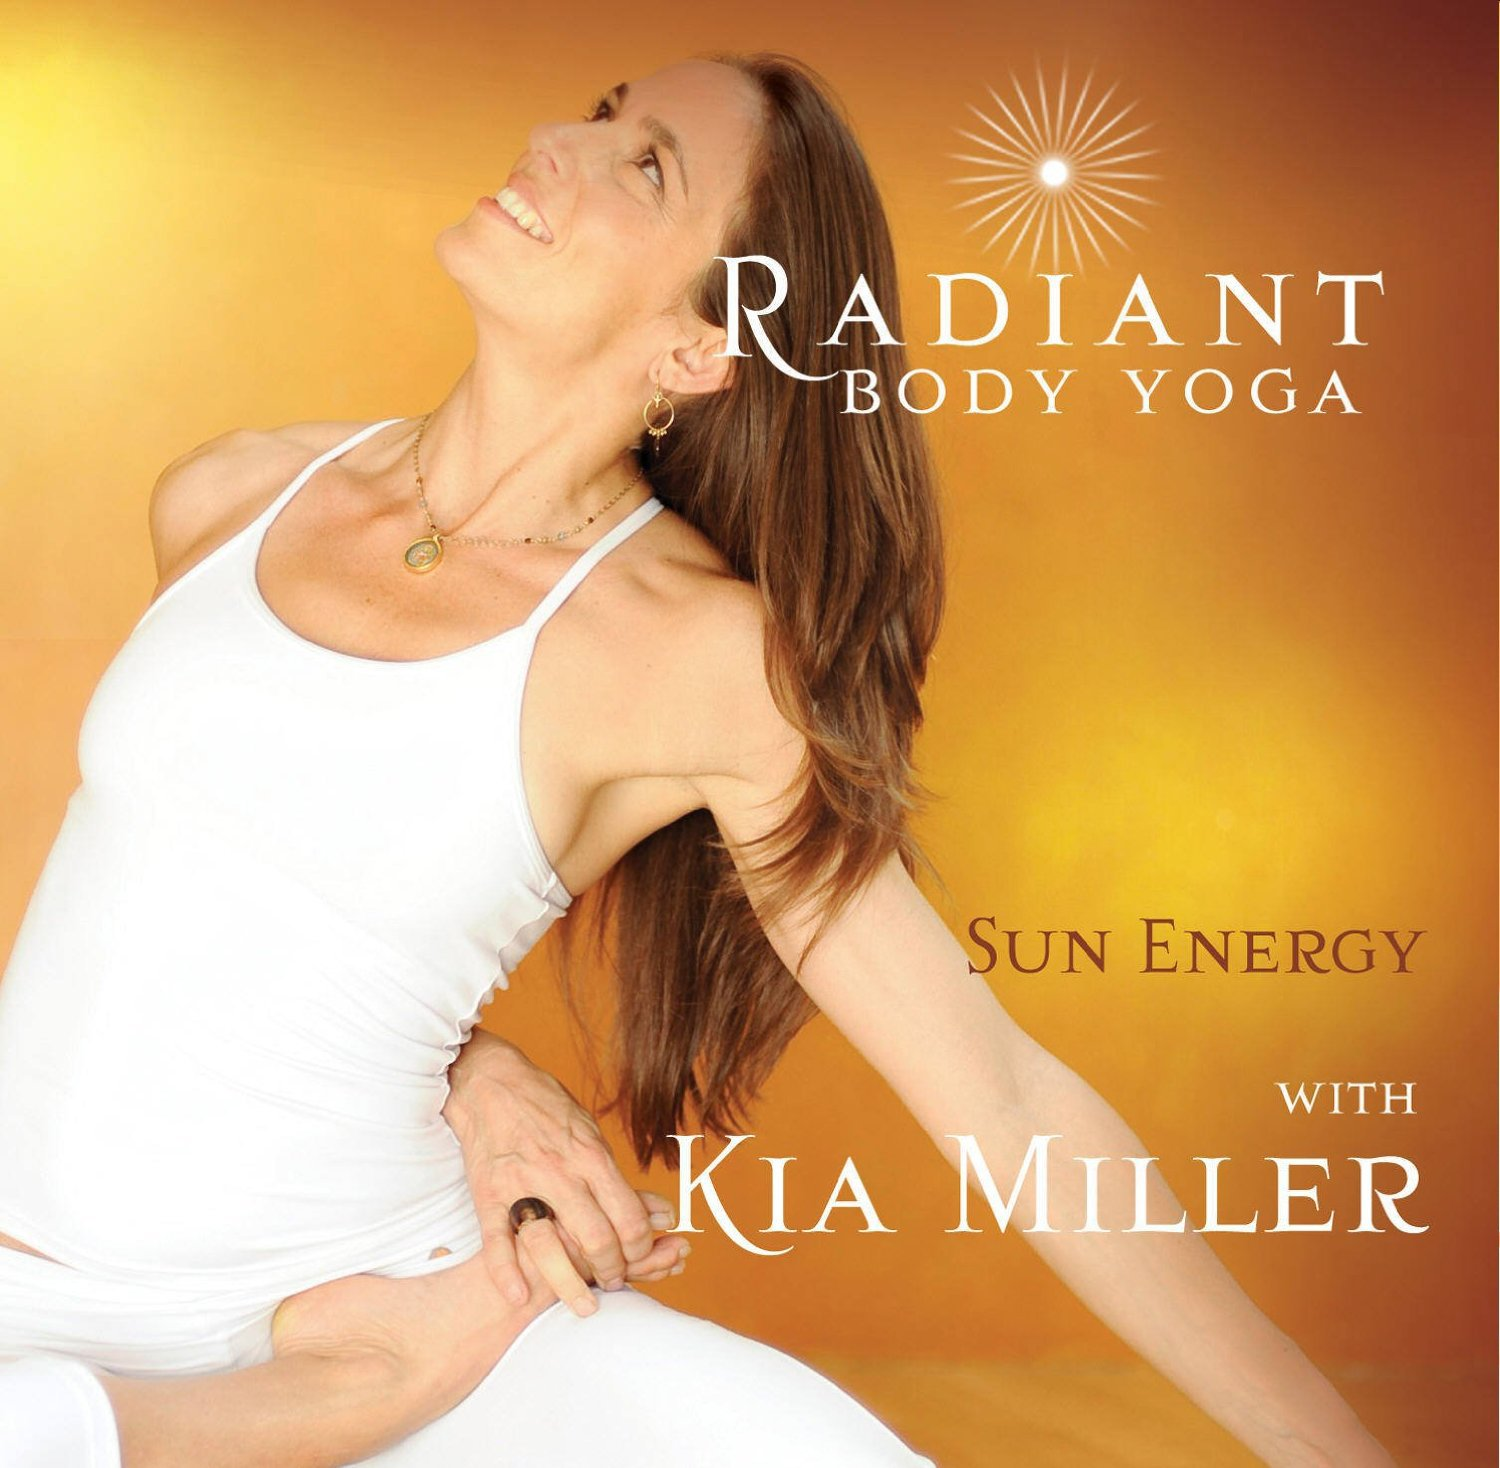 Amazon.com: Radiant Body Yoga - Sun Energy: Kia Miller ...